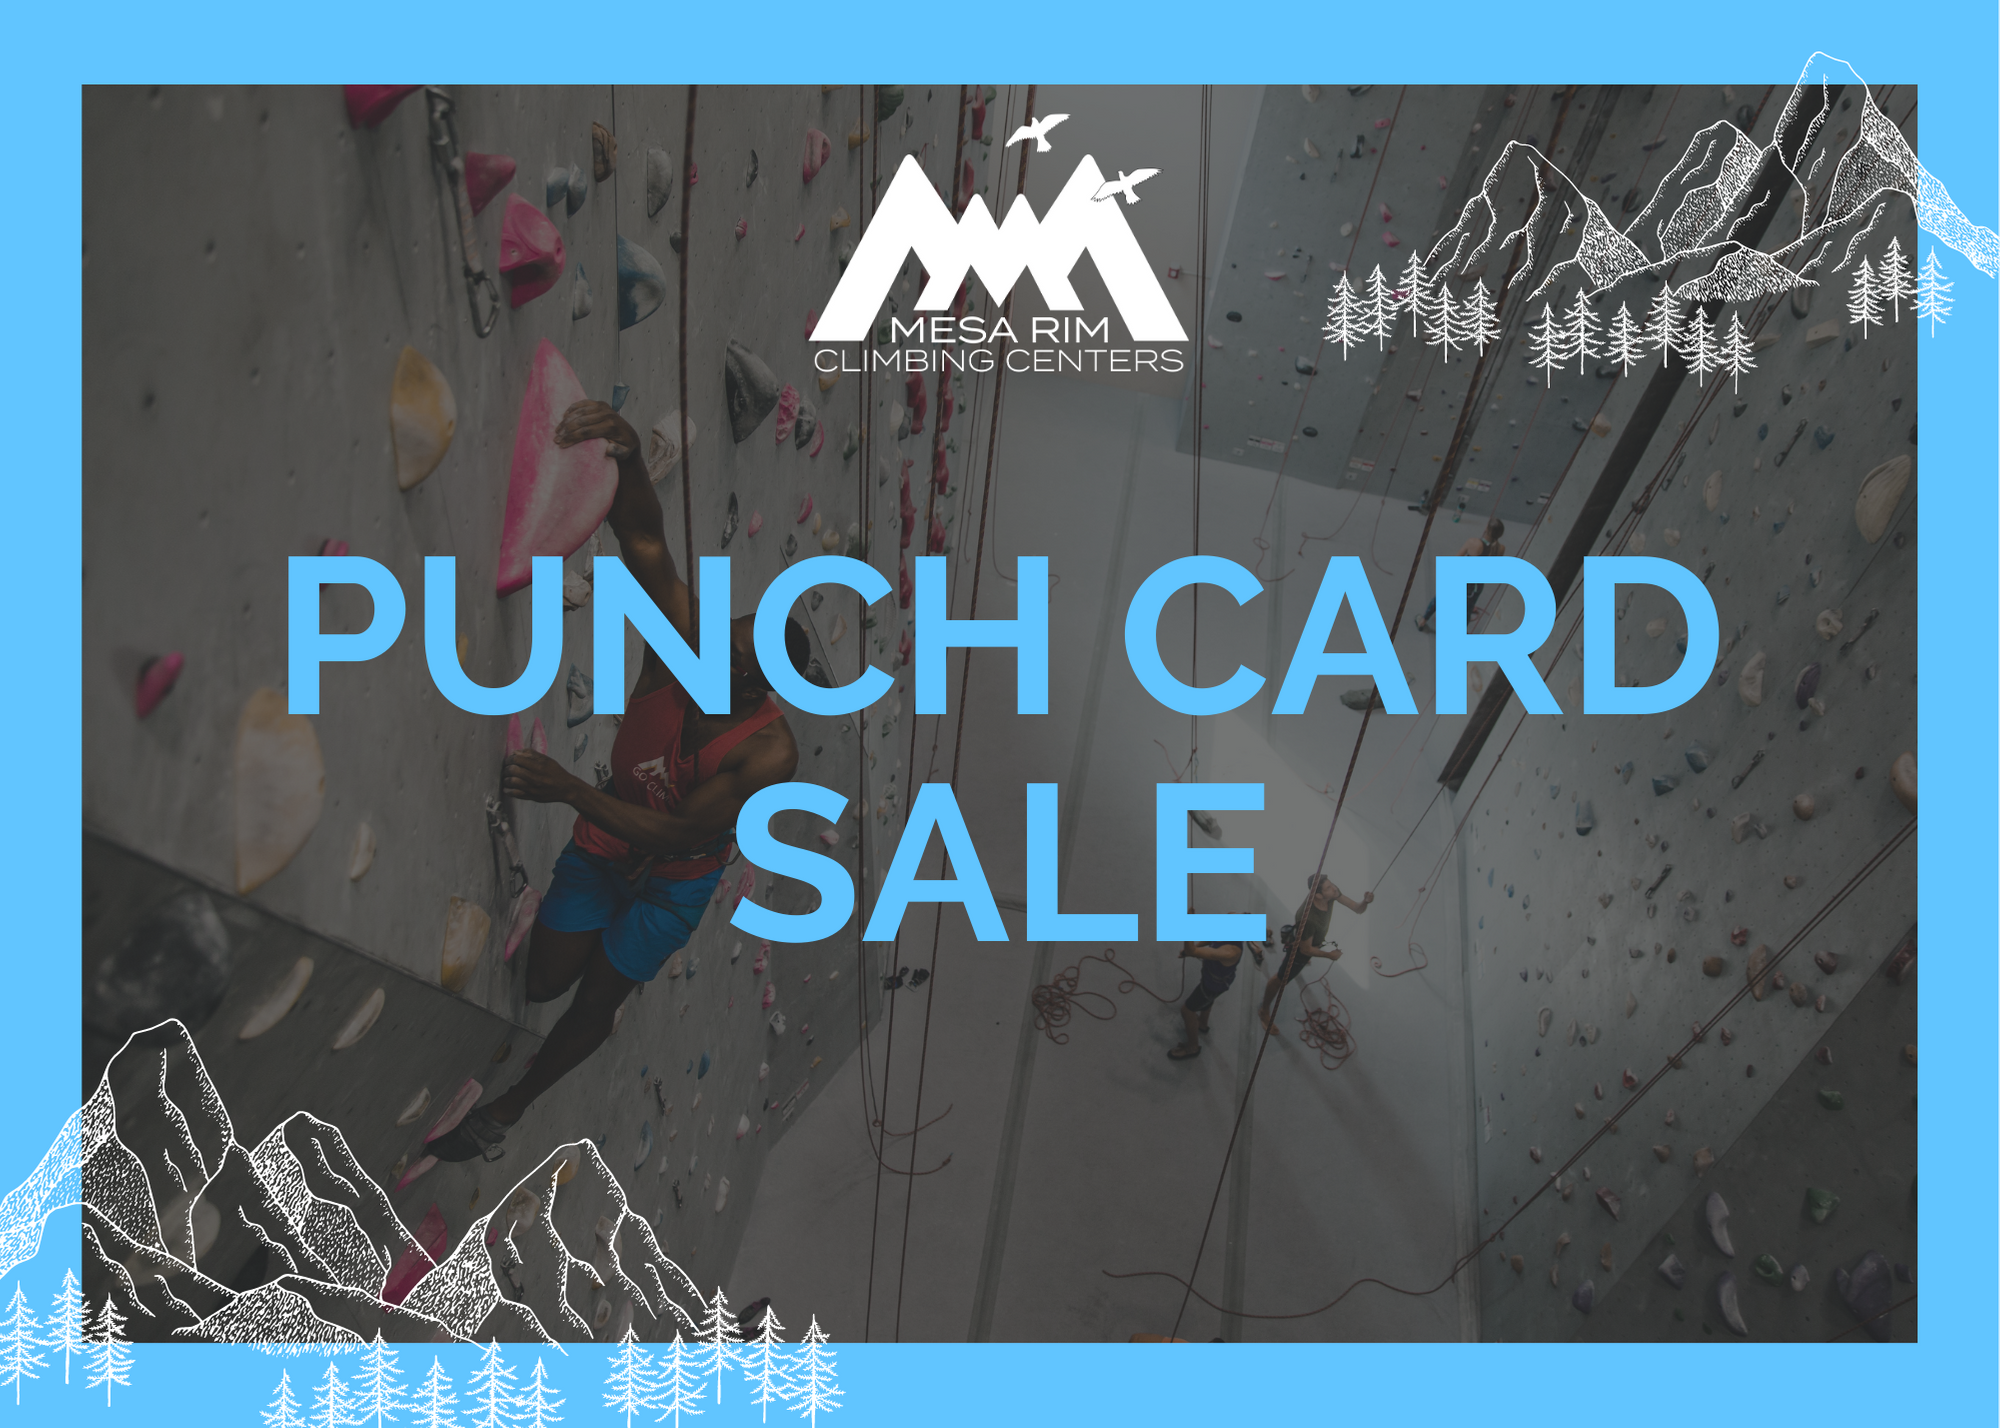 Punch Card Sale